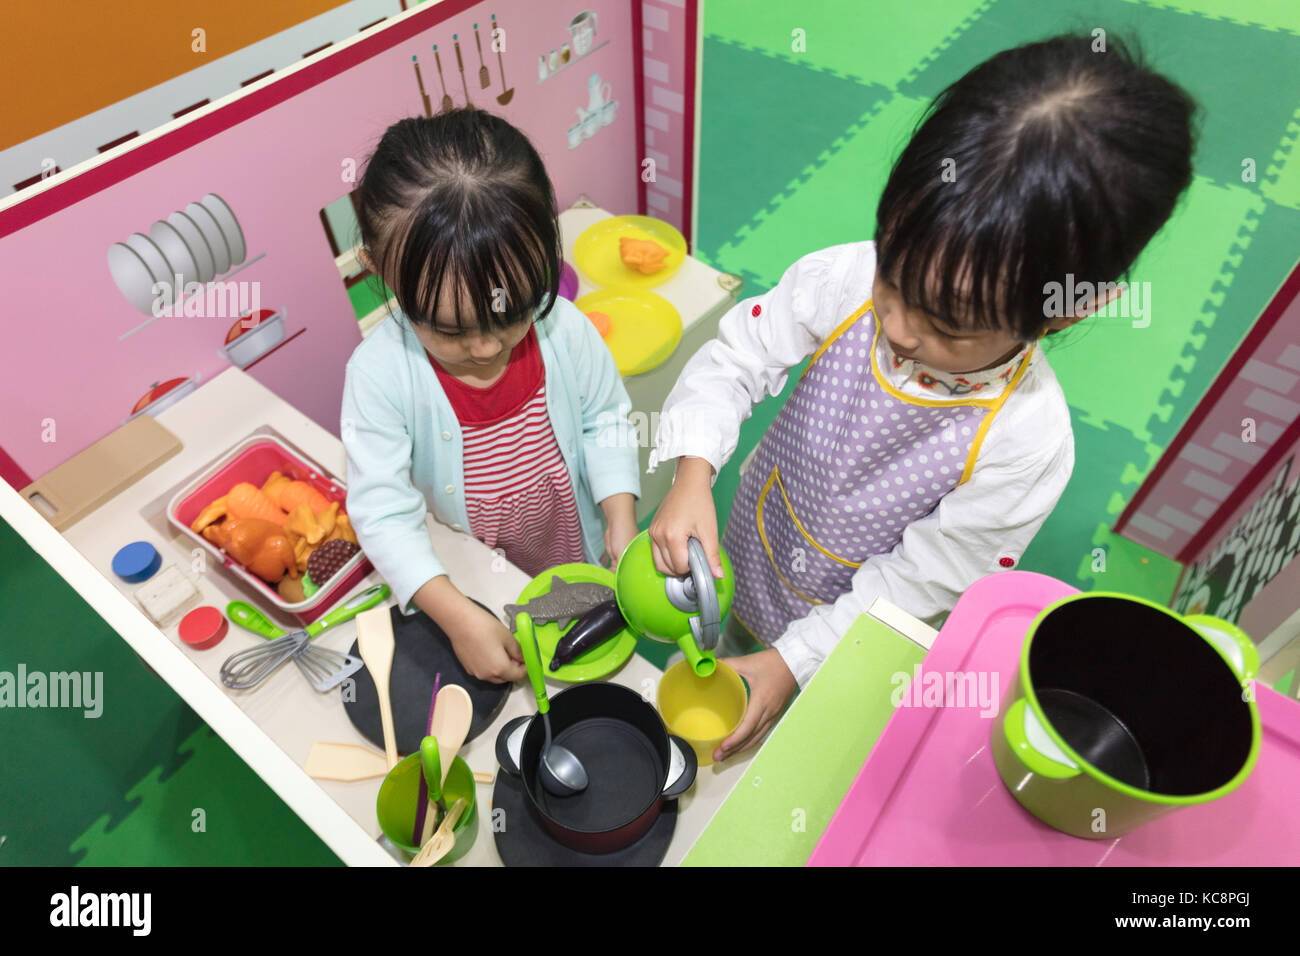 Asian Chinese little girls role-playing at kitchen at indoor playground - Stock Image